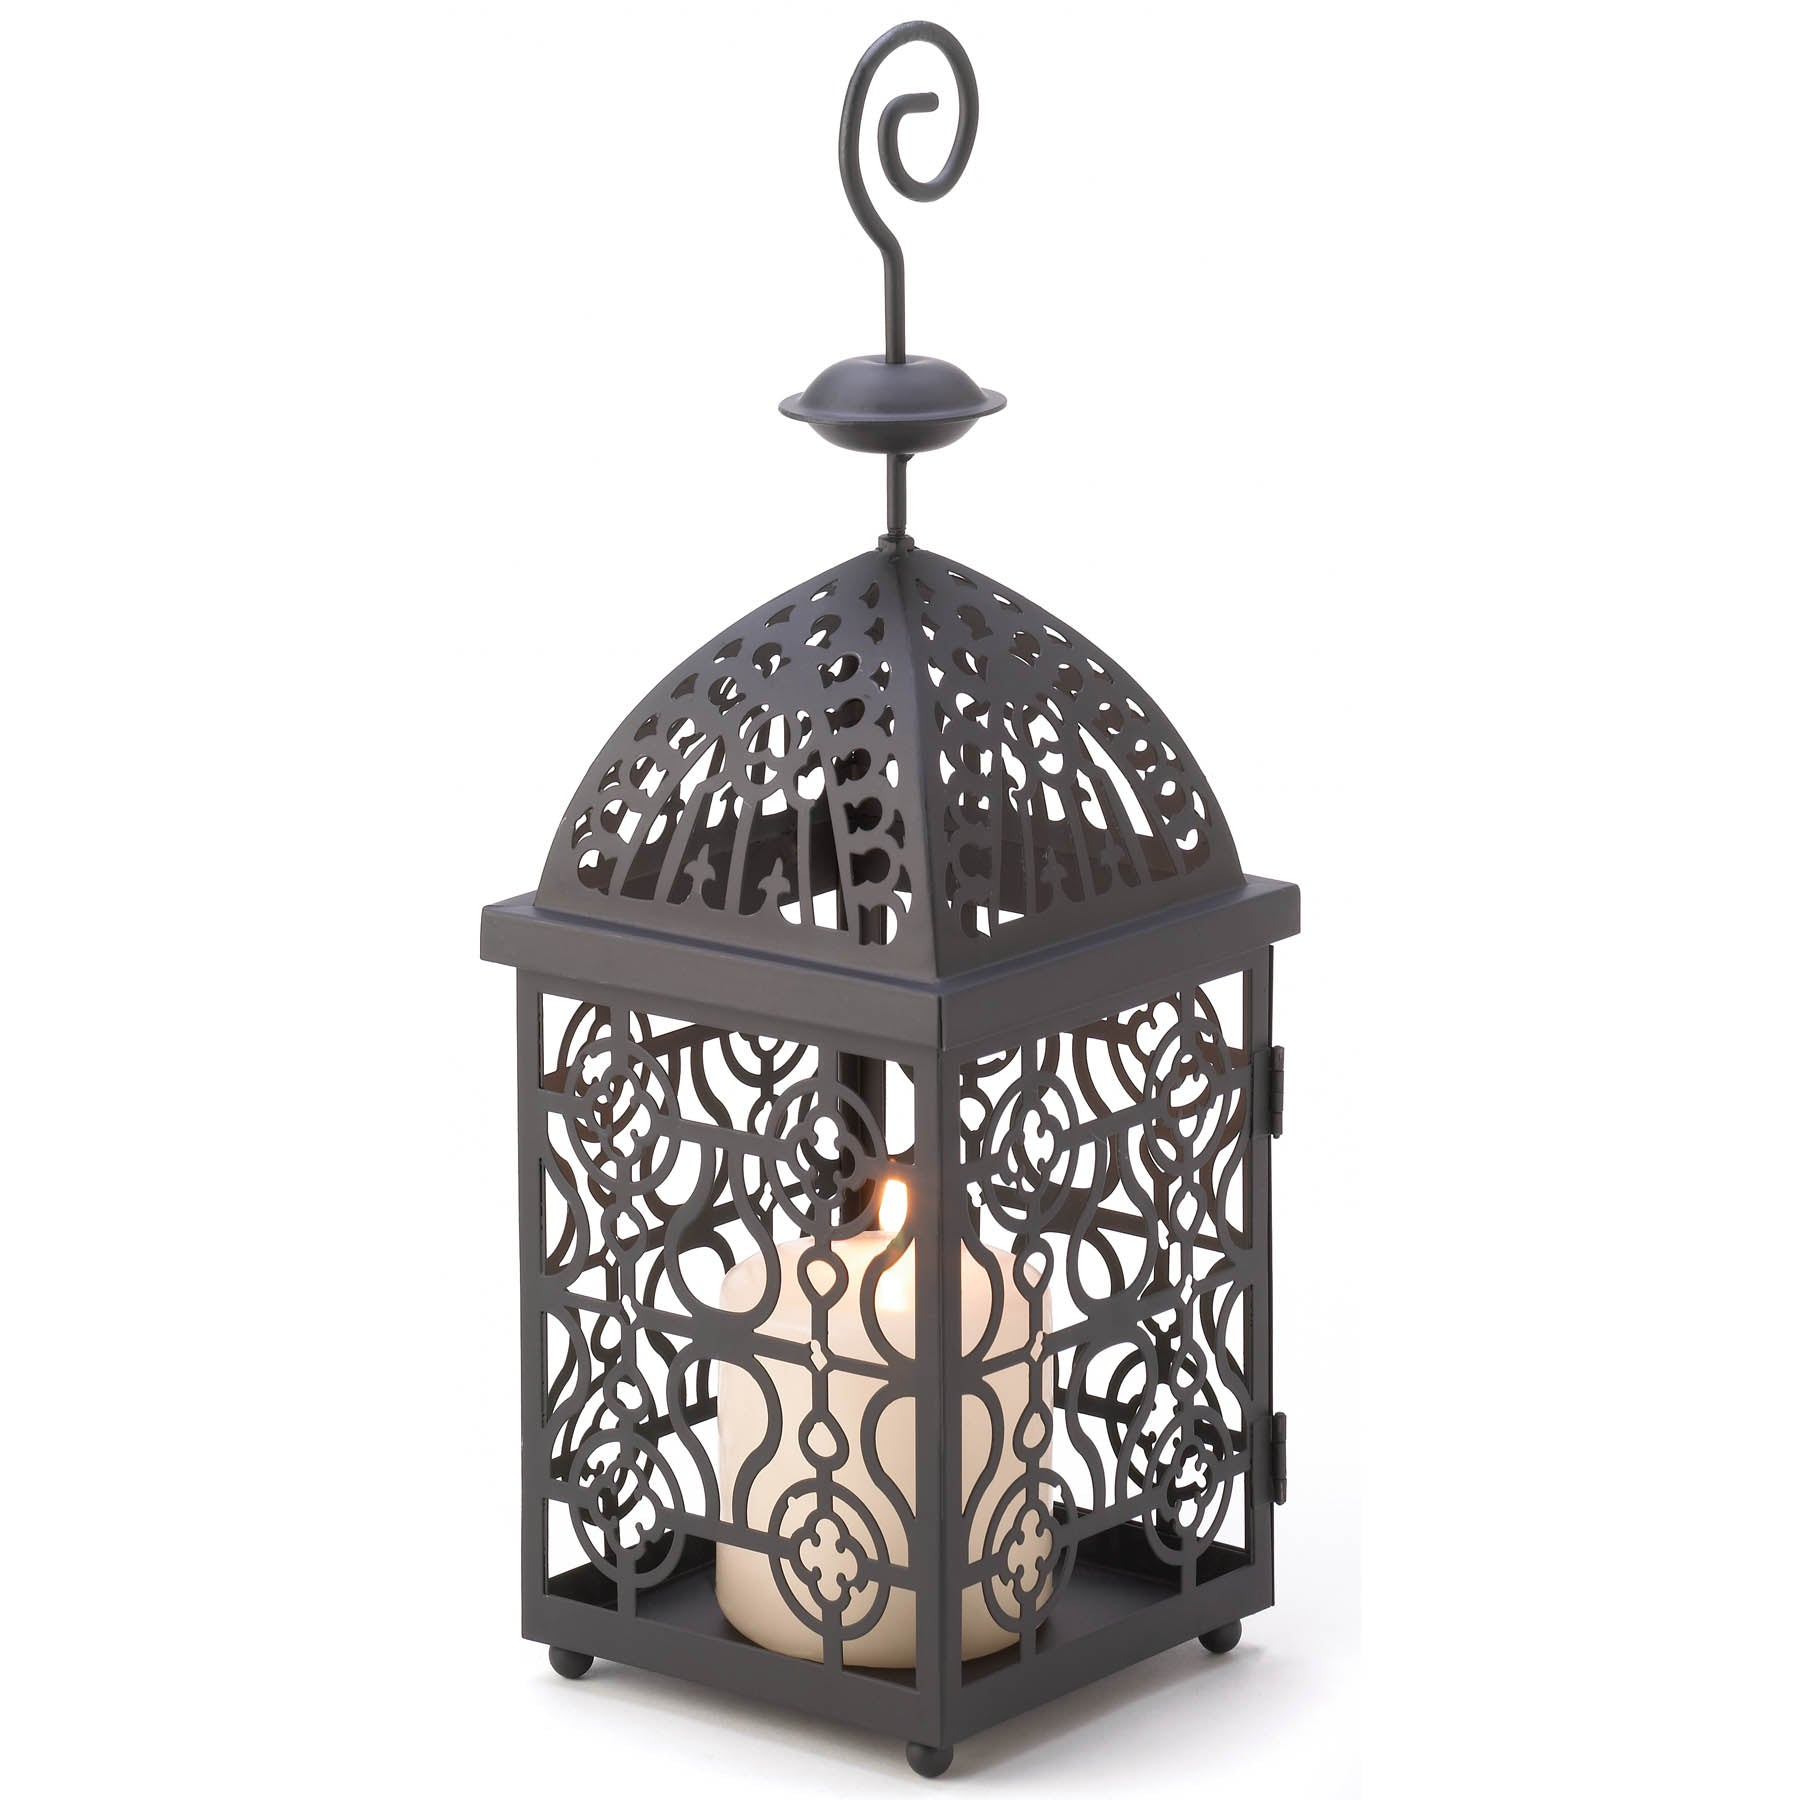 Gallery of Light Moroccan Birdcage Candle Lantern - 13175